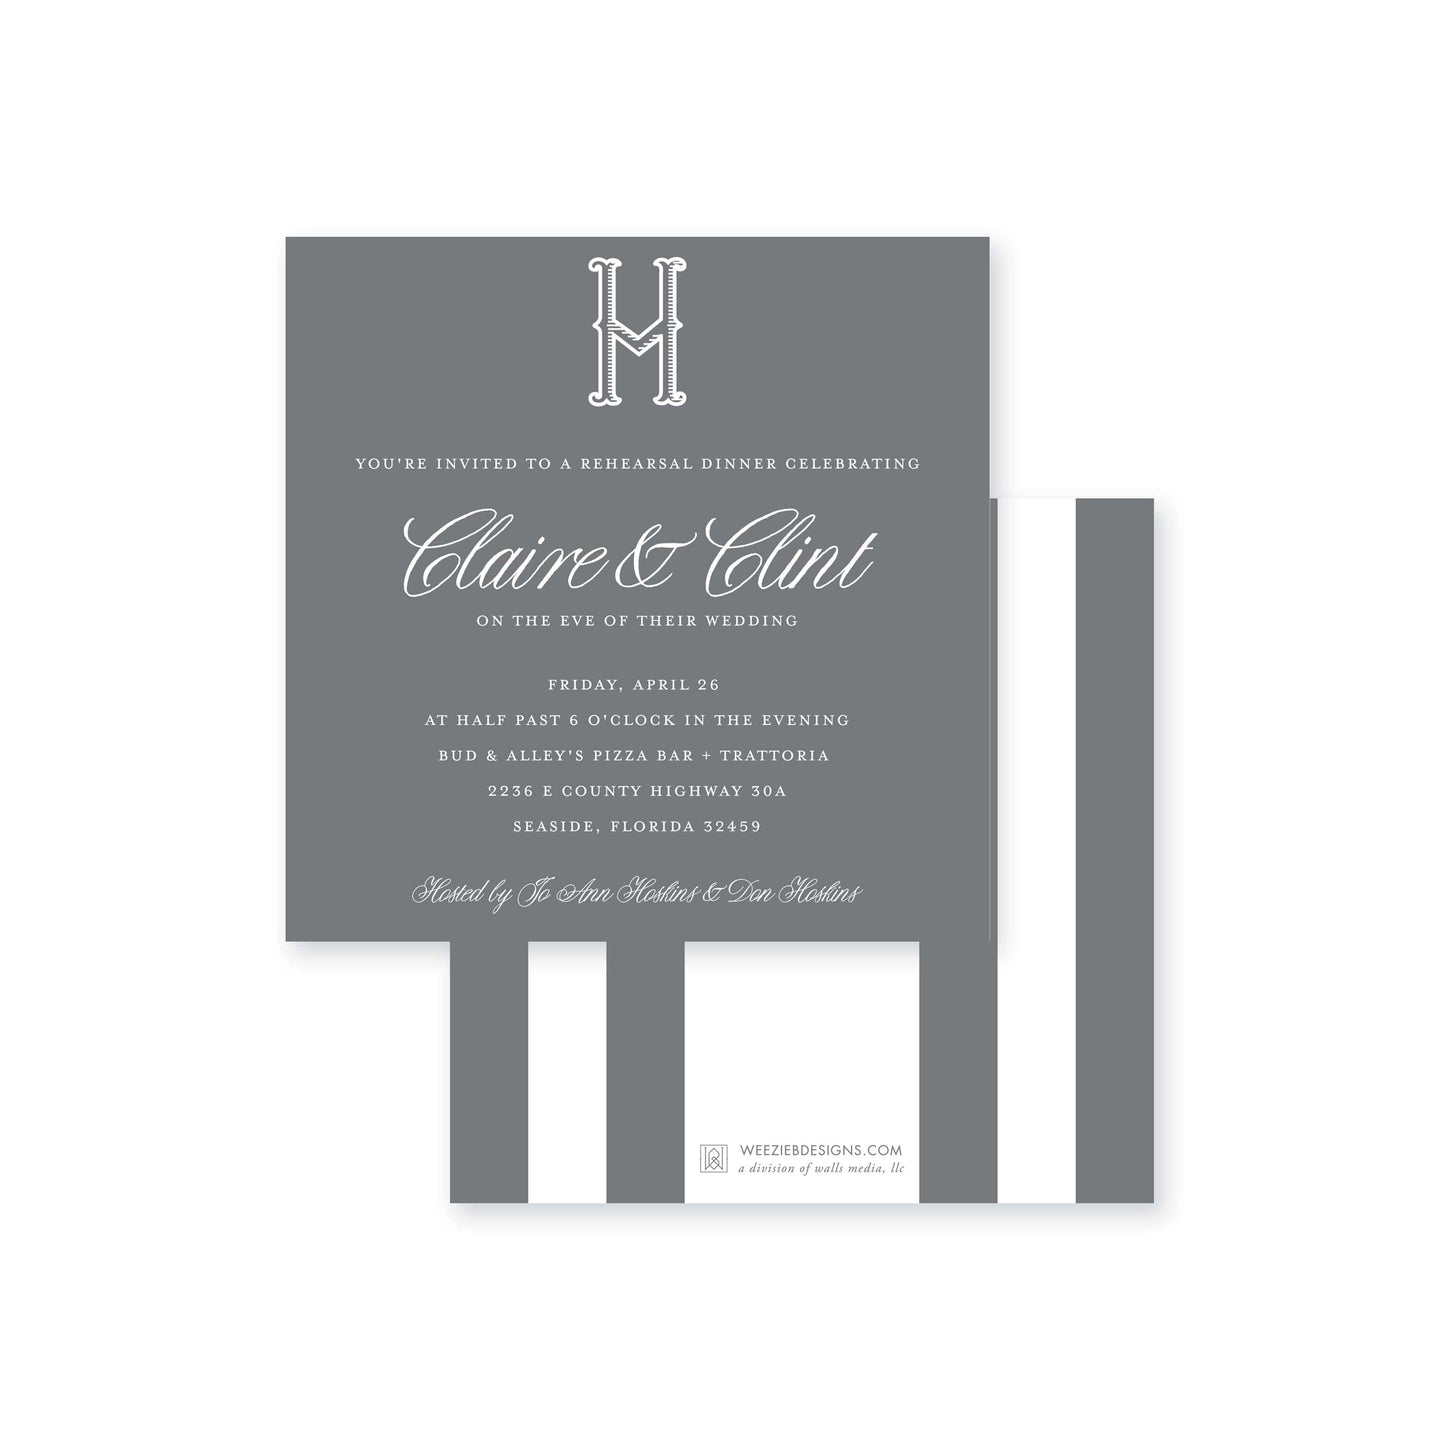 Weezie B. Designs | Elegant & Modern Rehearsal Dinner Invitation